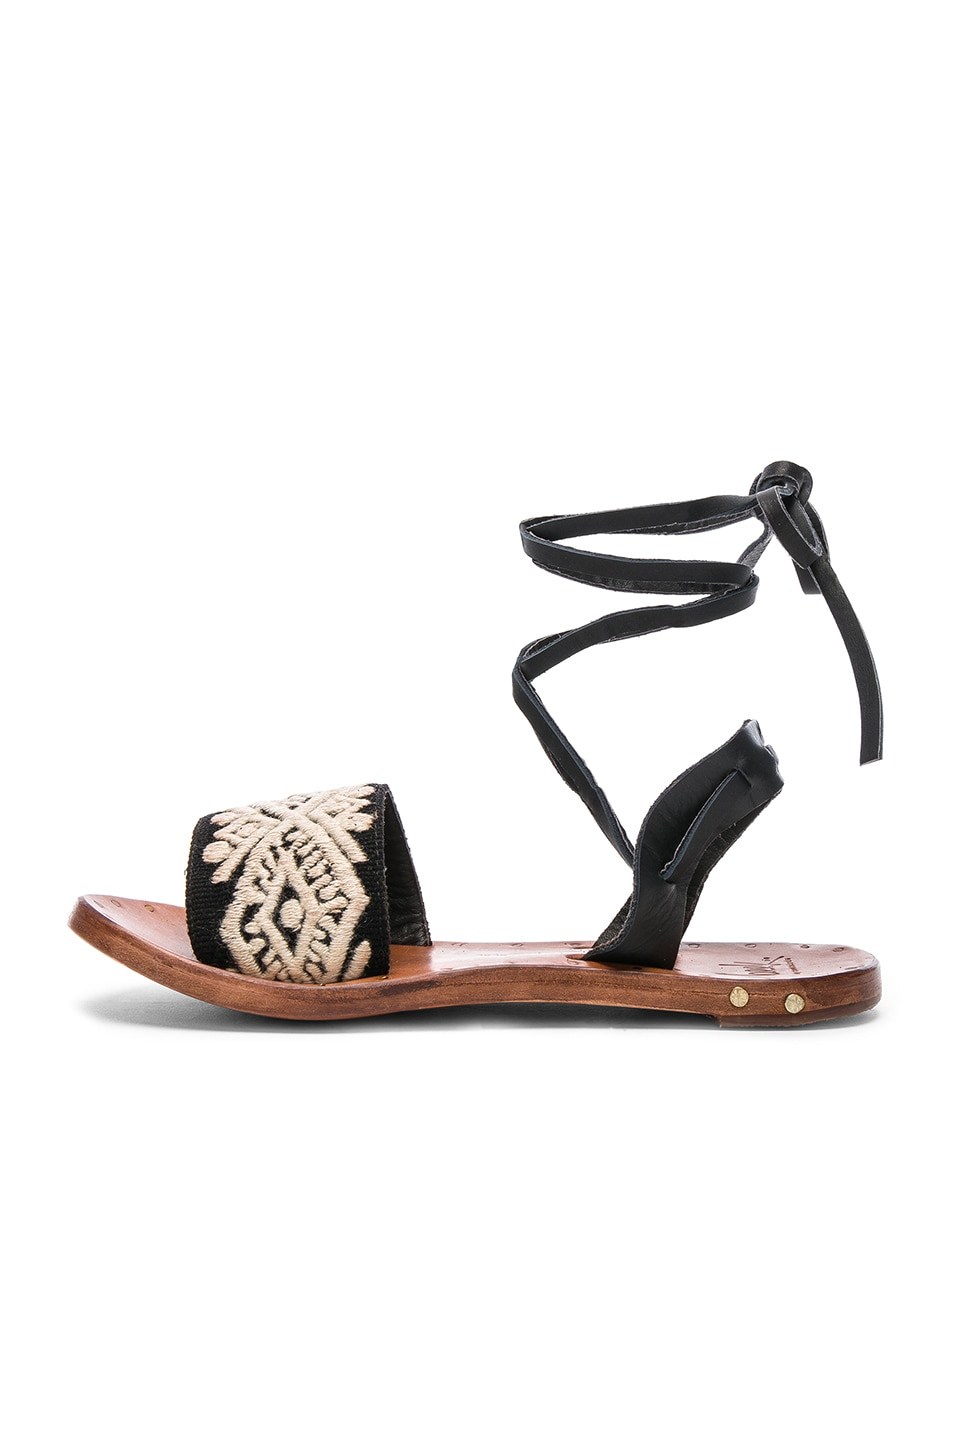 BEEK Leather & Embroidery Toucan Sandals in .